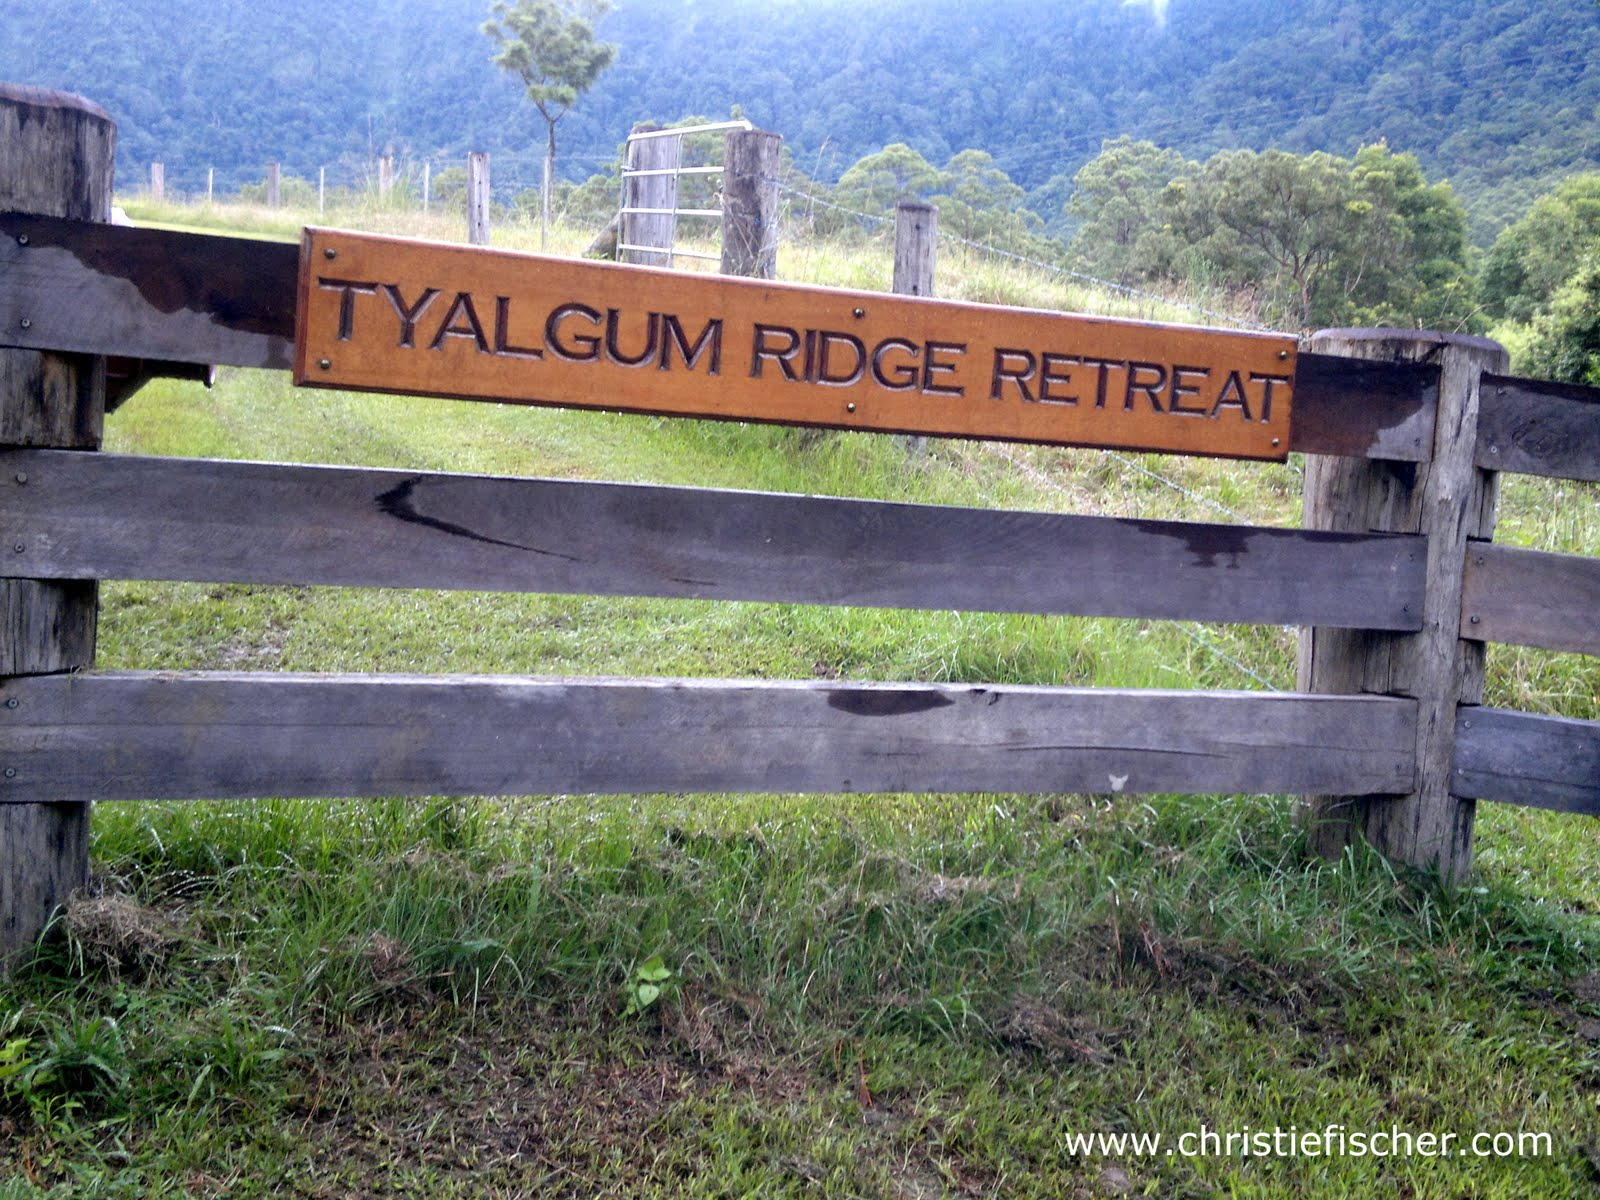 Year 5 Camp Tyalgum Ridge Retreat